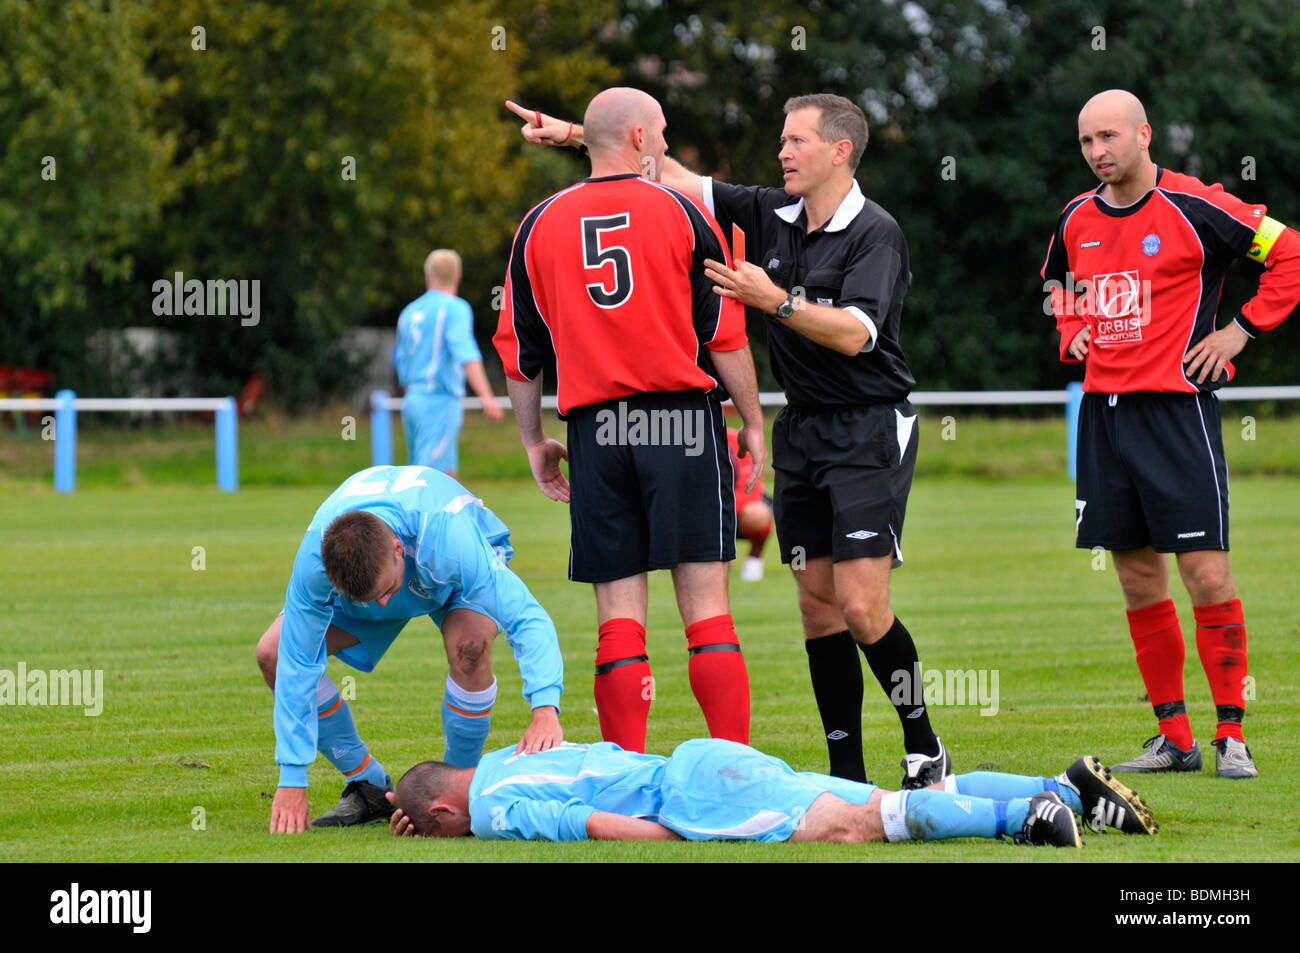 referee sends player off during football match - Stock Image